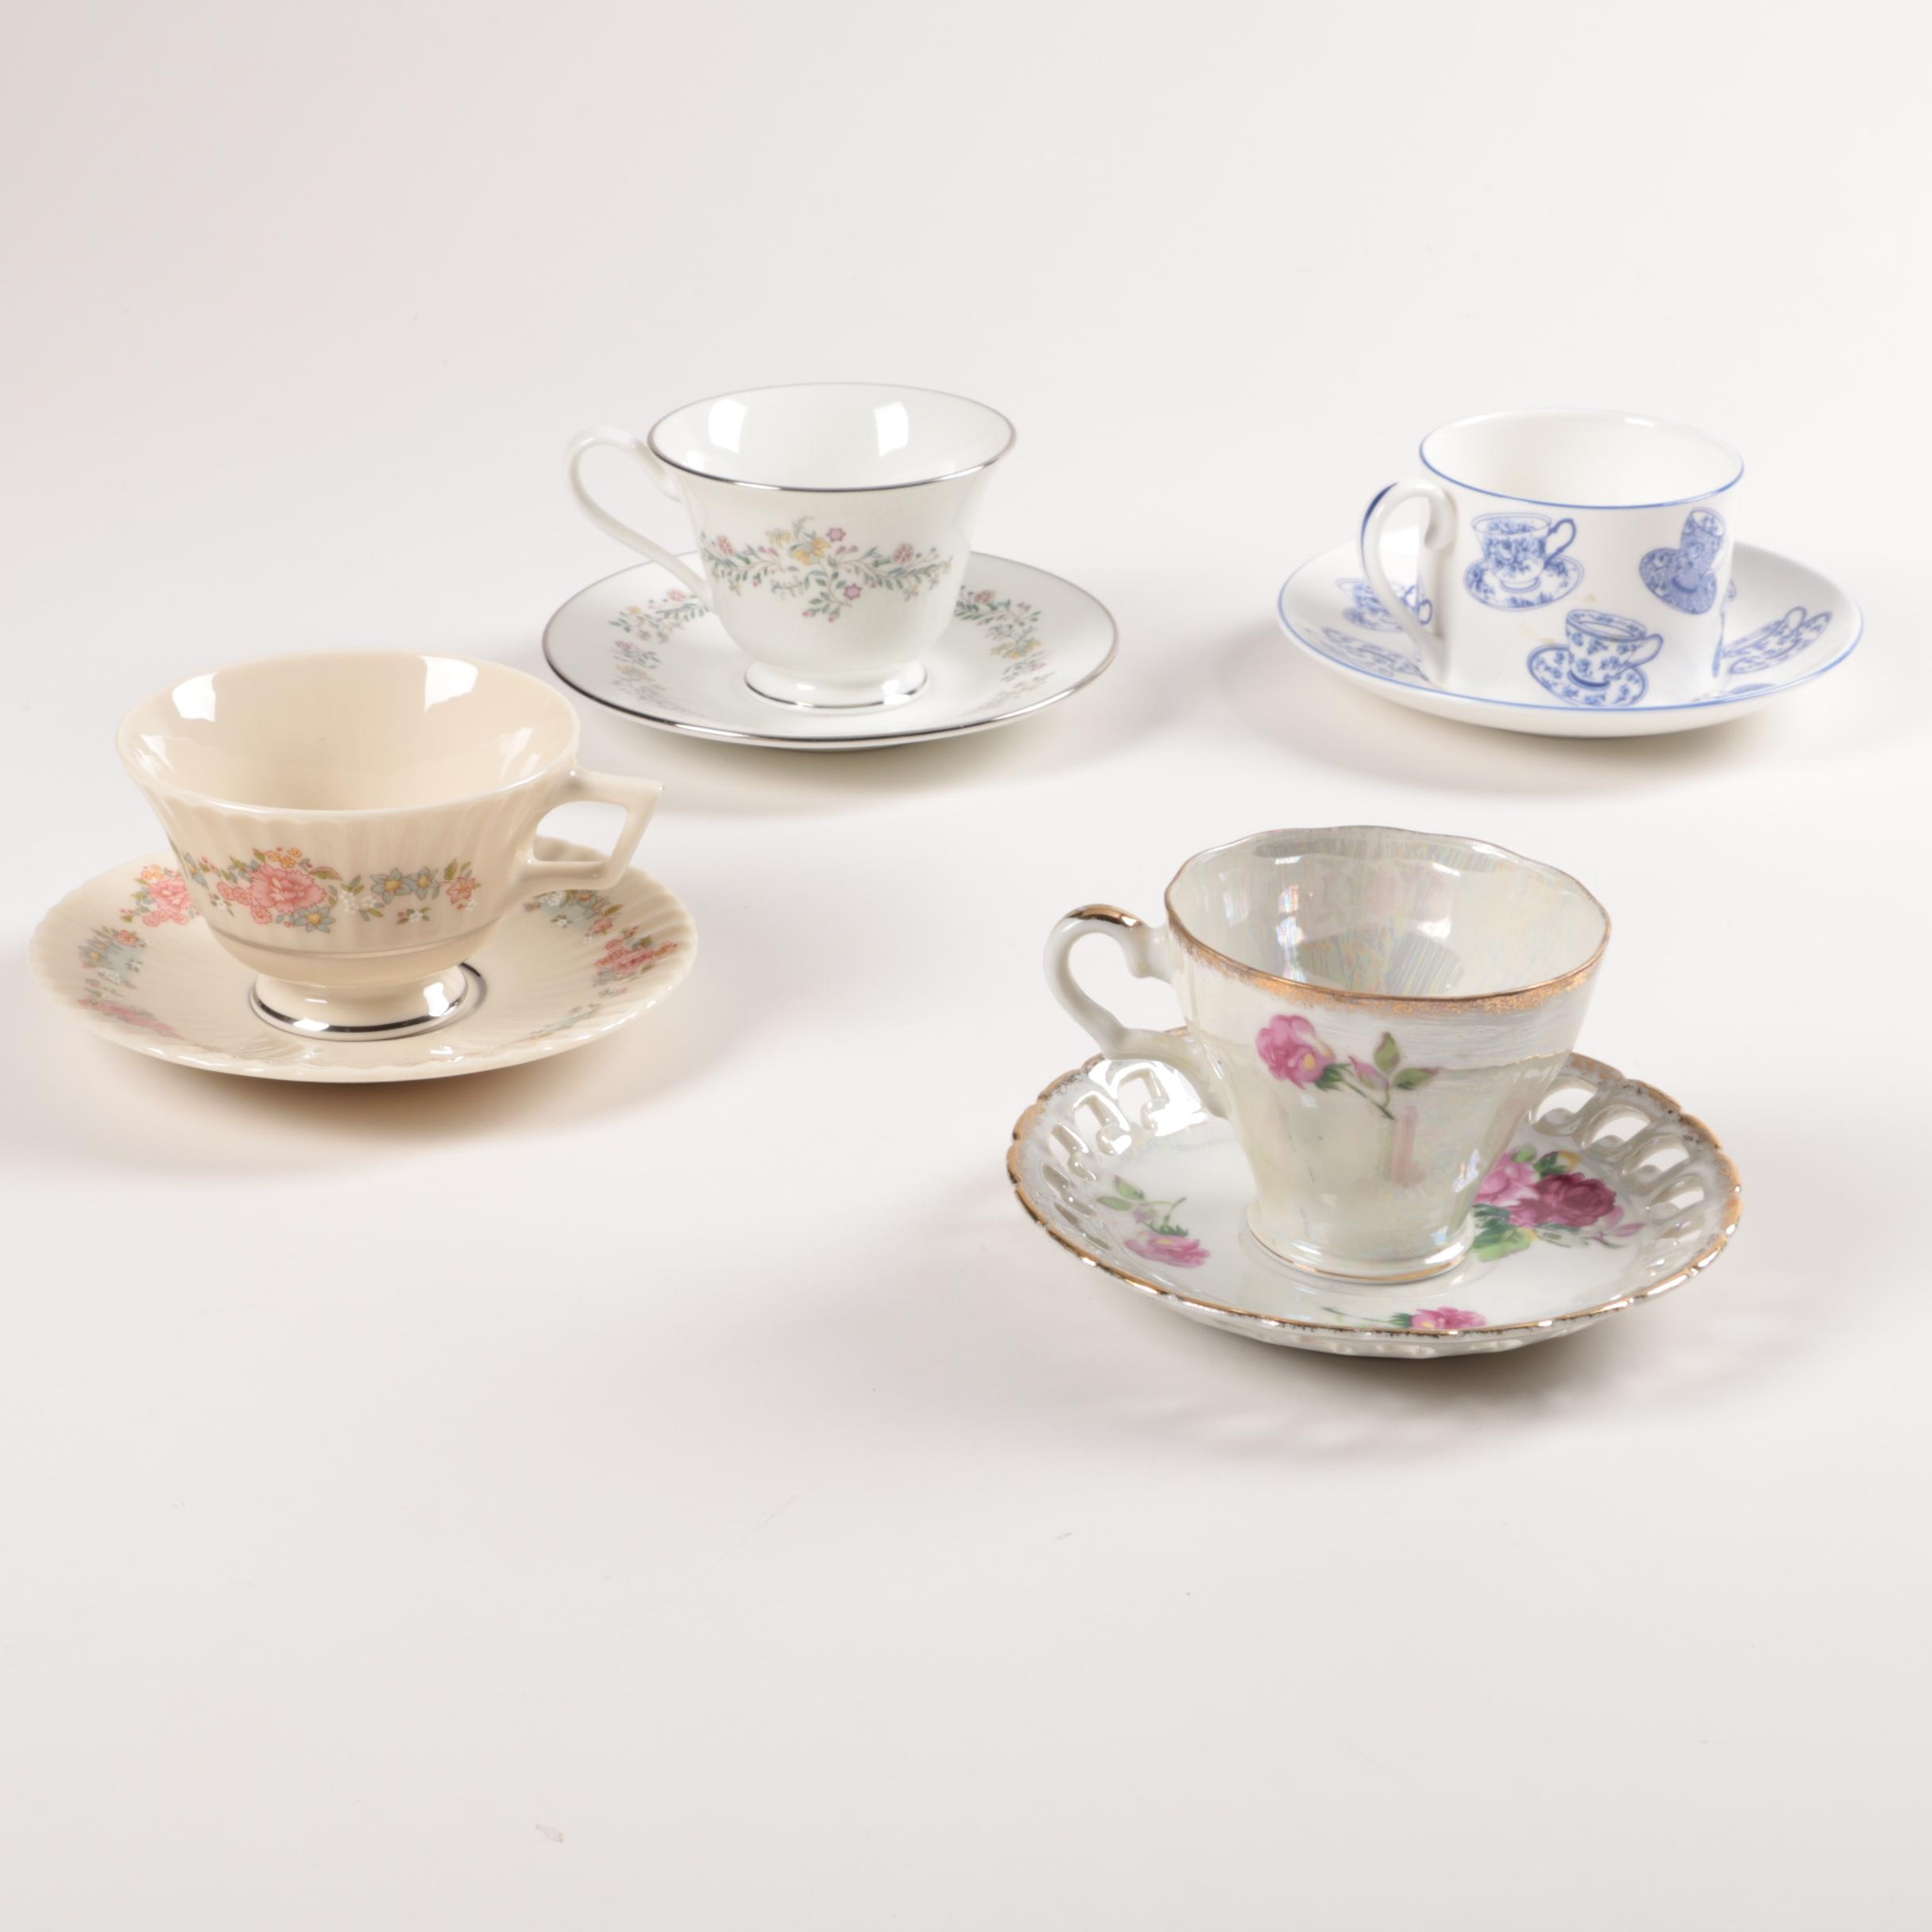 Porcelain Teacups and Saucers Including Lenox